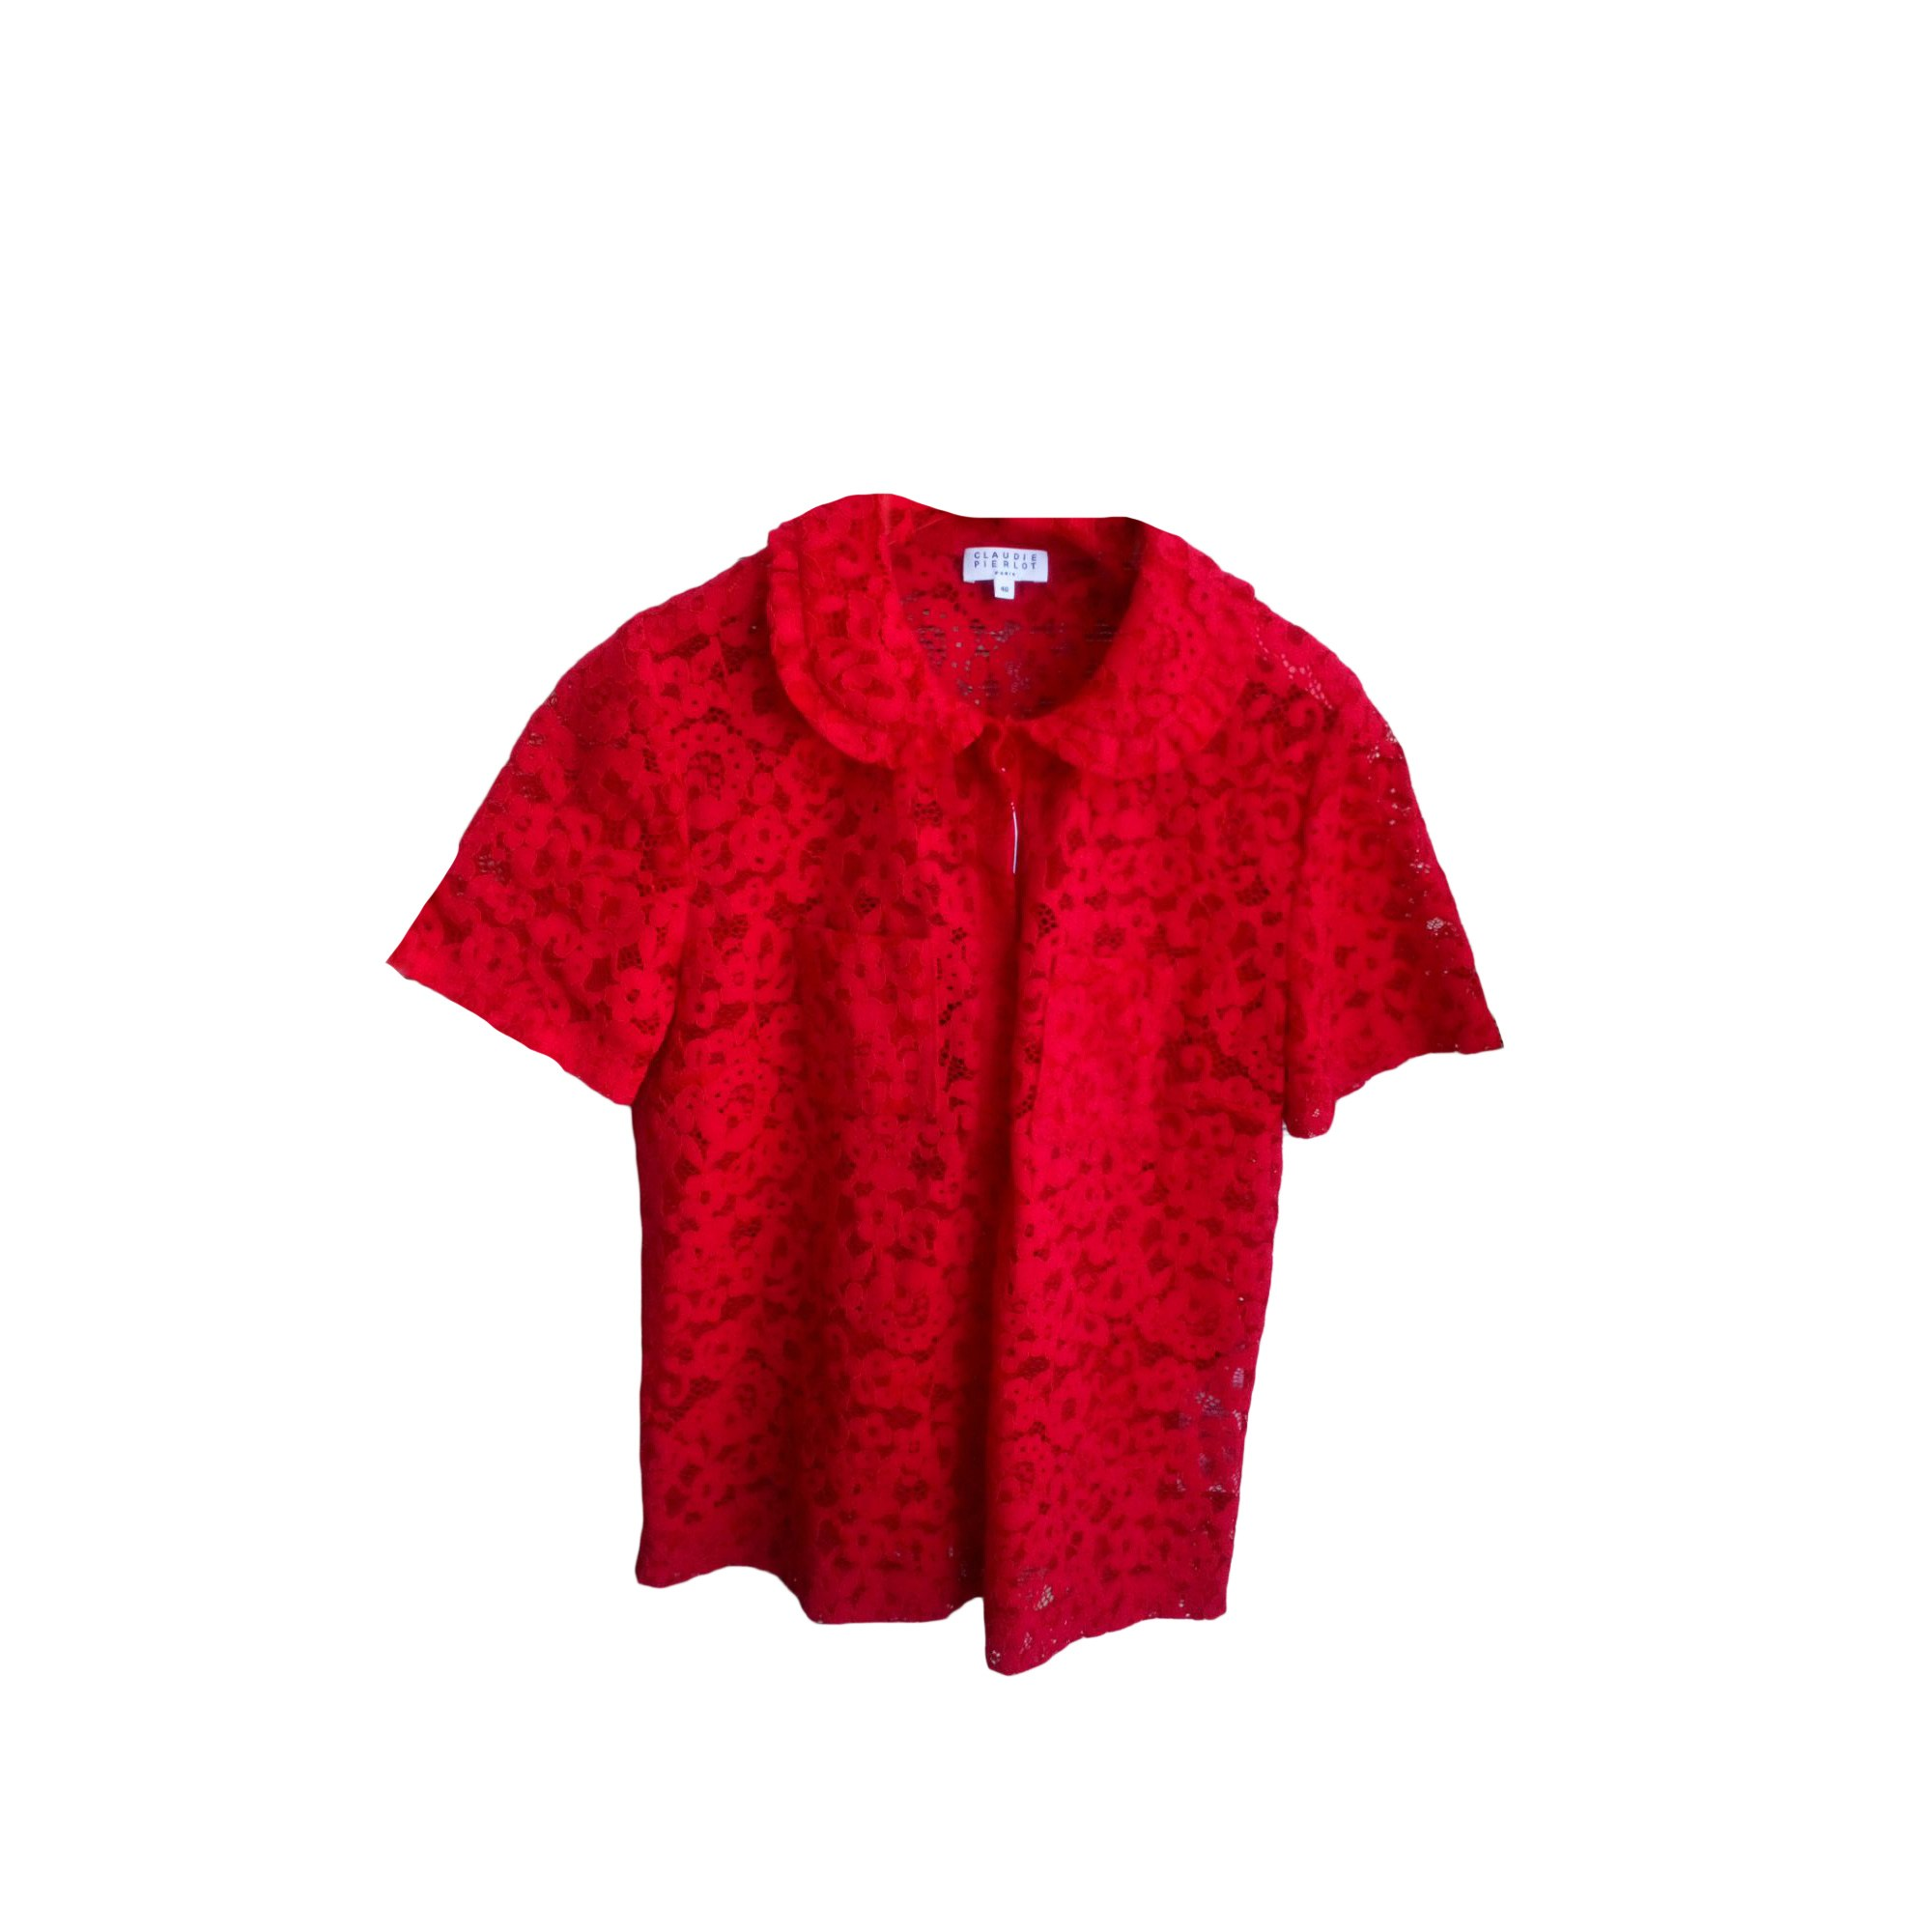 Chemisier CLAUDIE PIERLOT Rouge, bordeaux